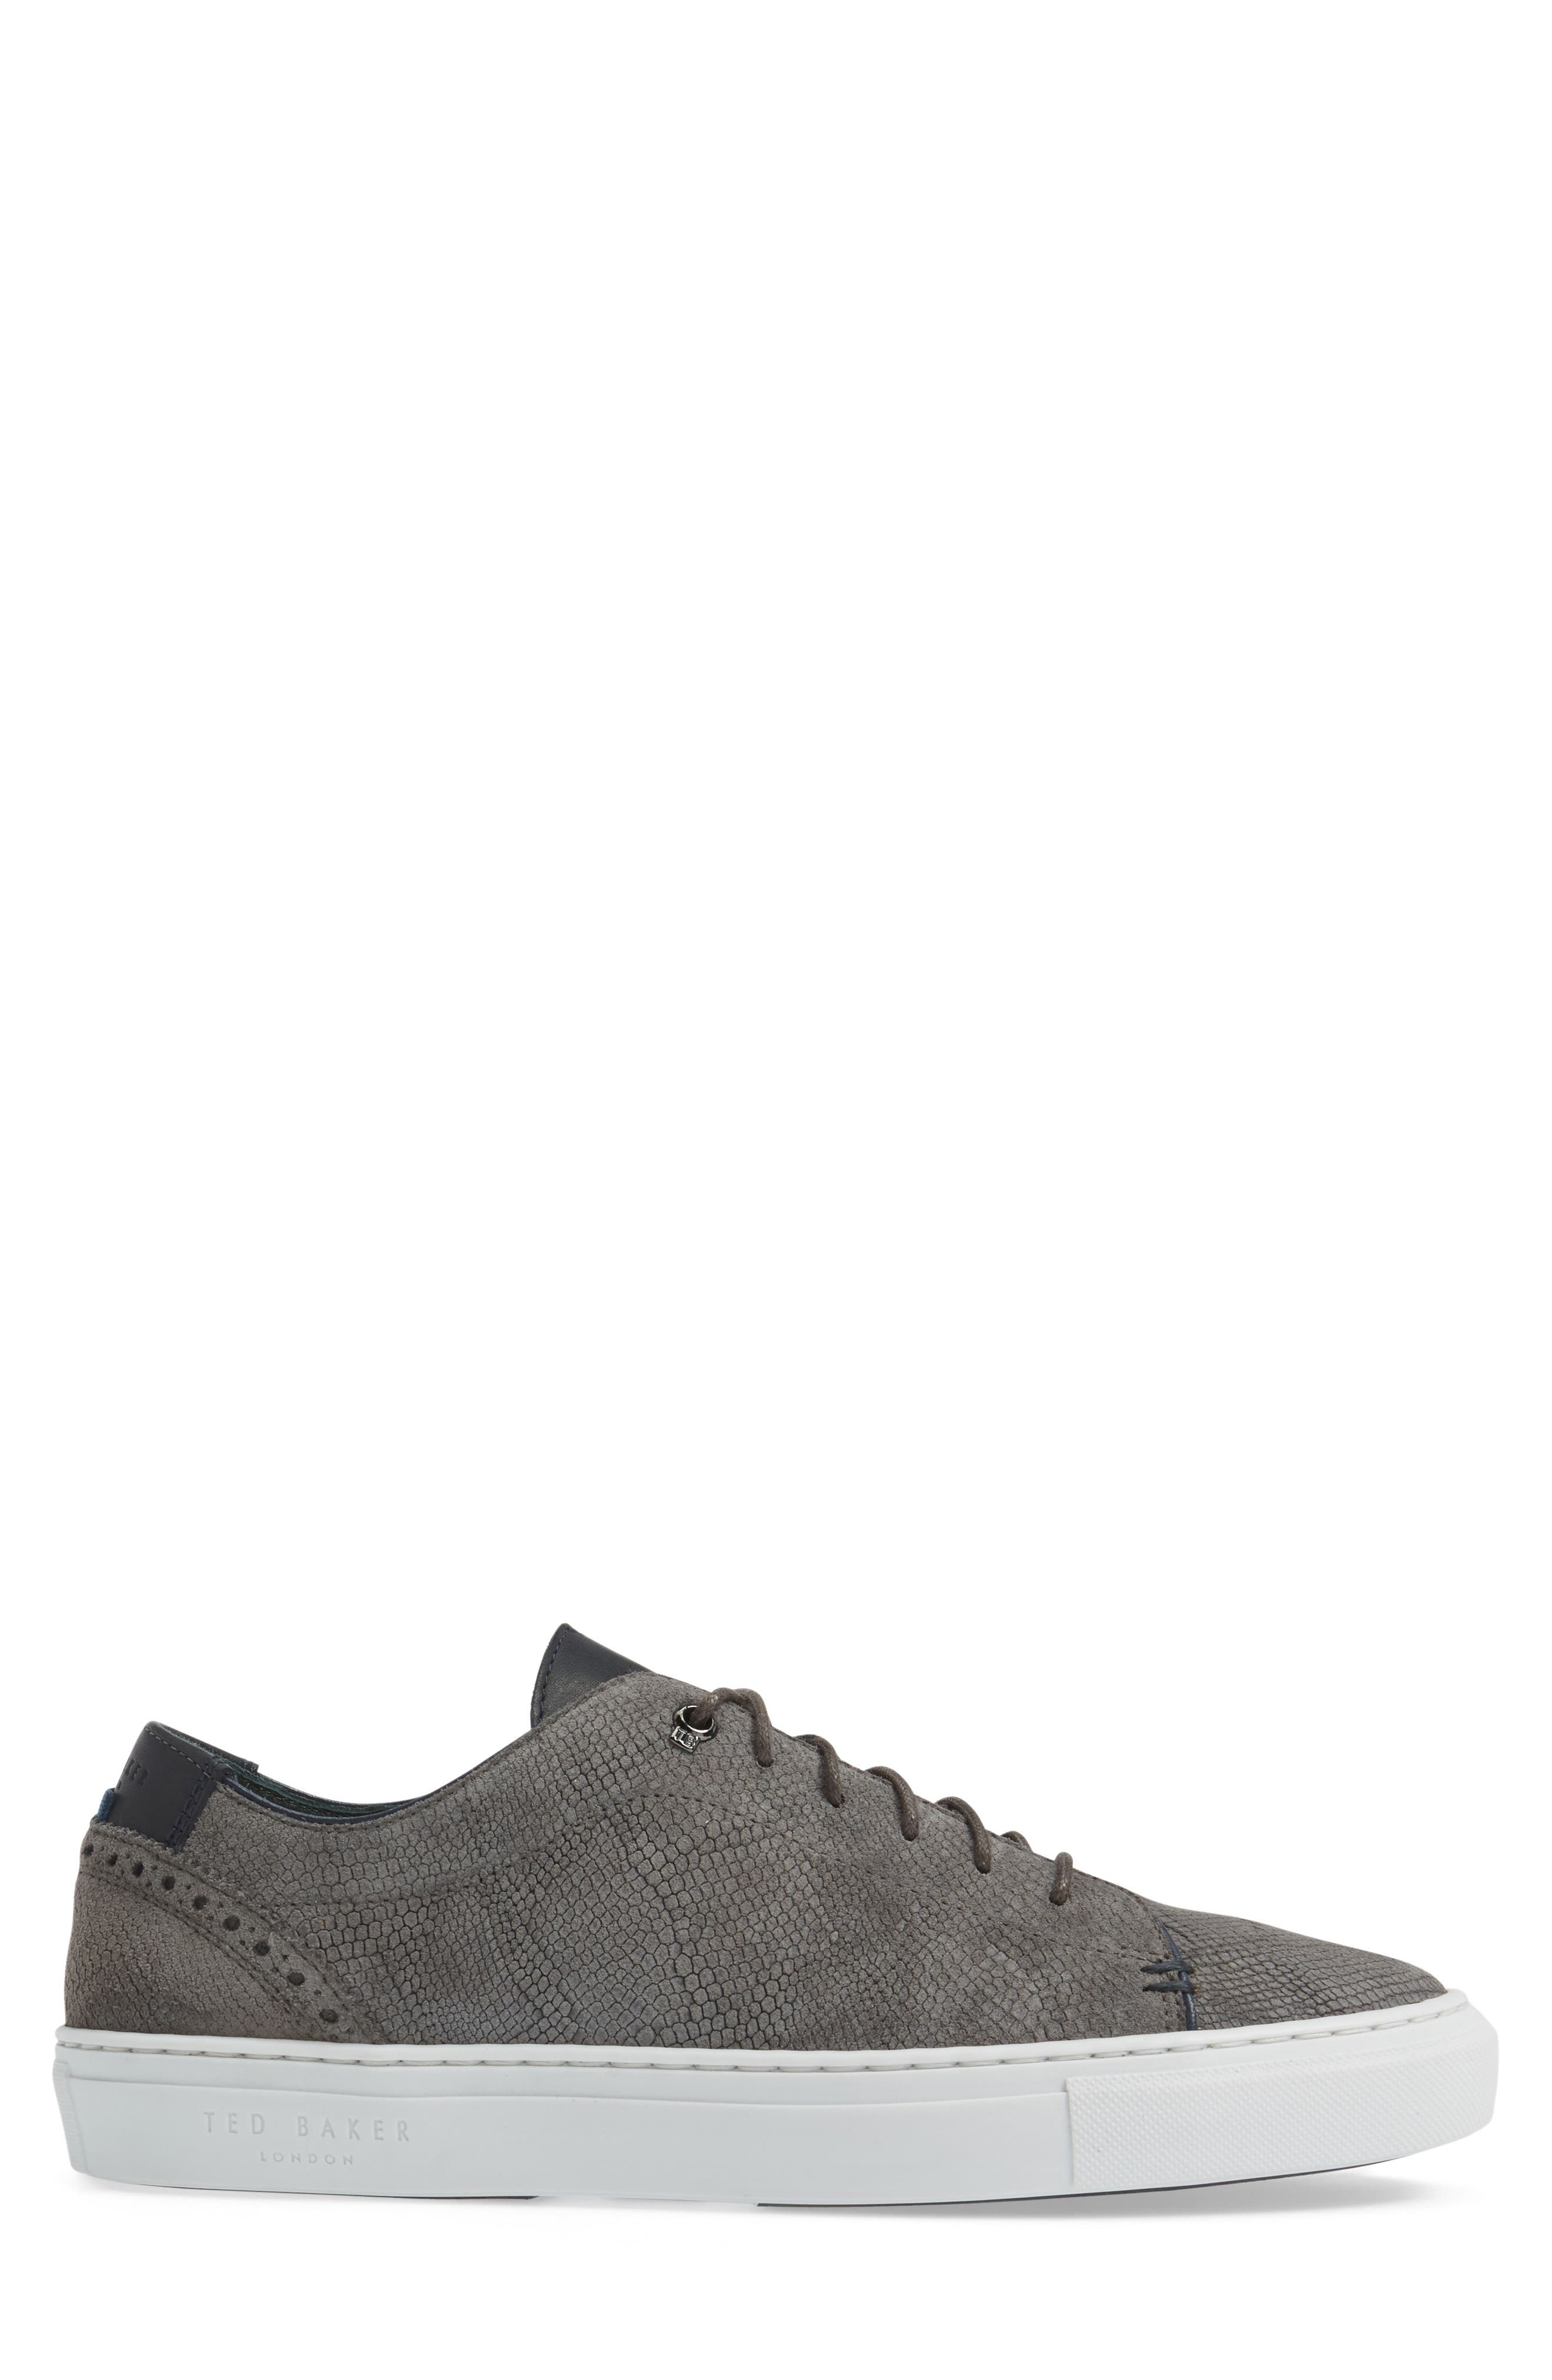 Duke Snake Embossed Sneaker,                             Alternate thumbnail 3, color,                             Dark Grey Suede